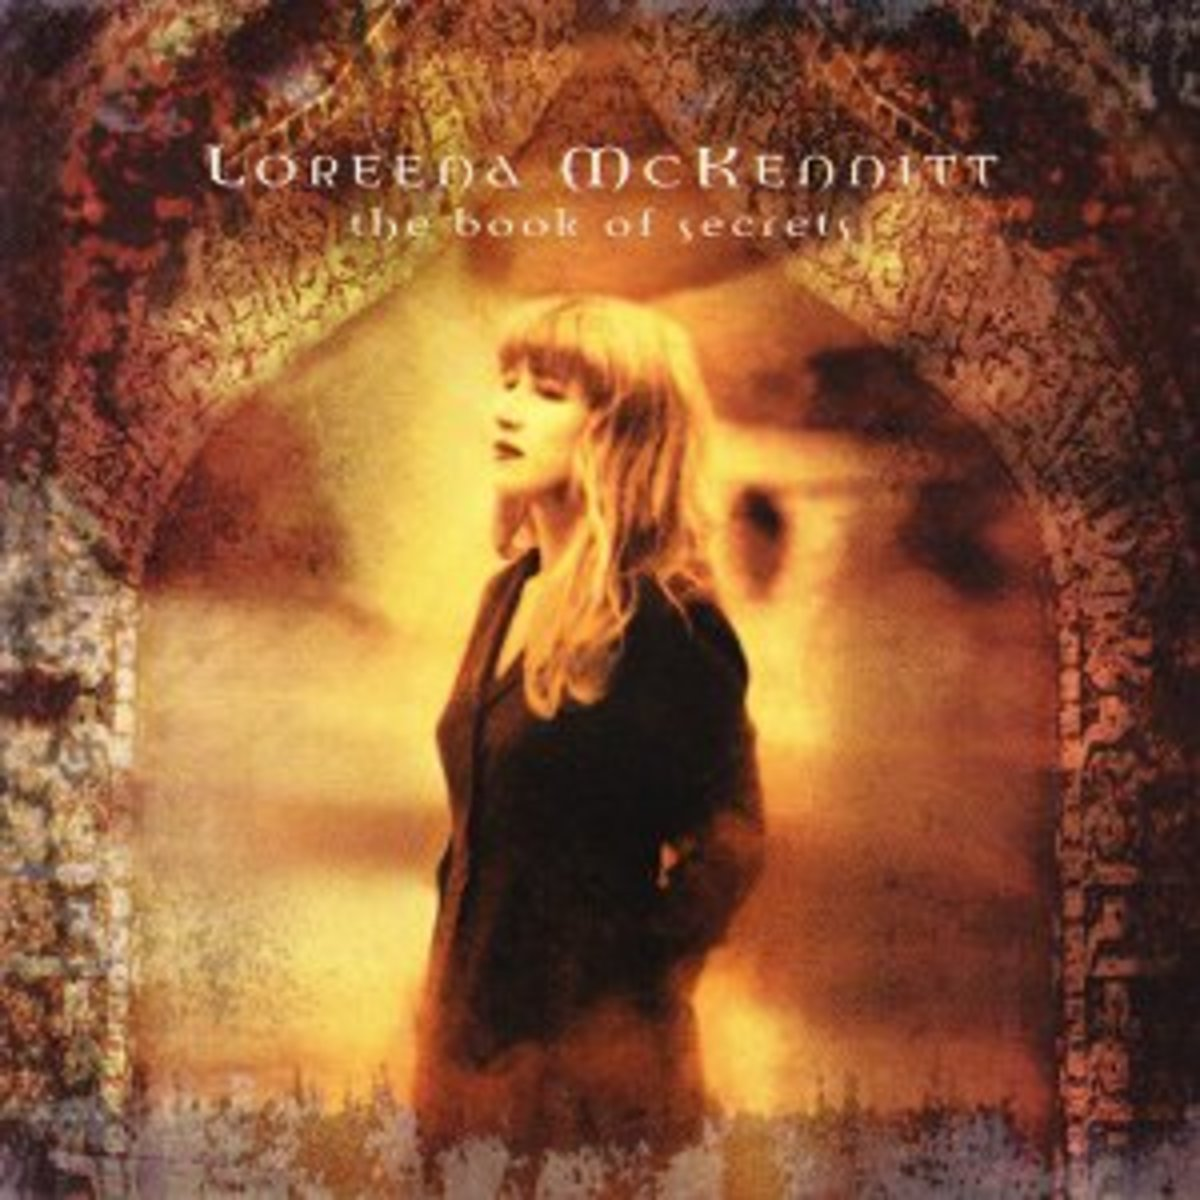 Loreena McKennitt's album, The Book of Secrets